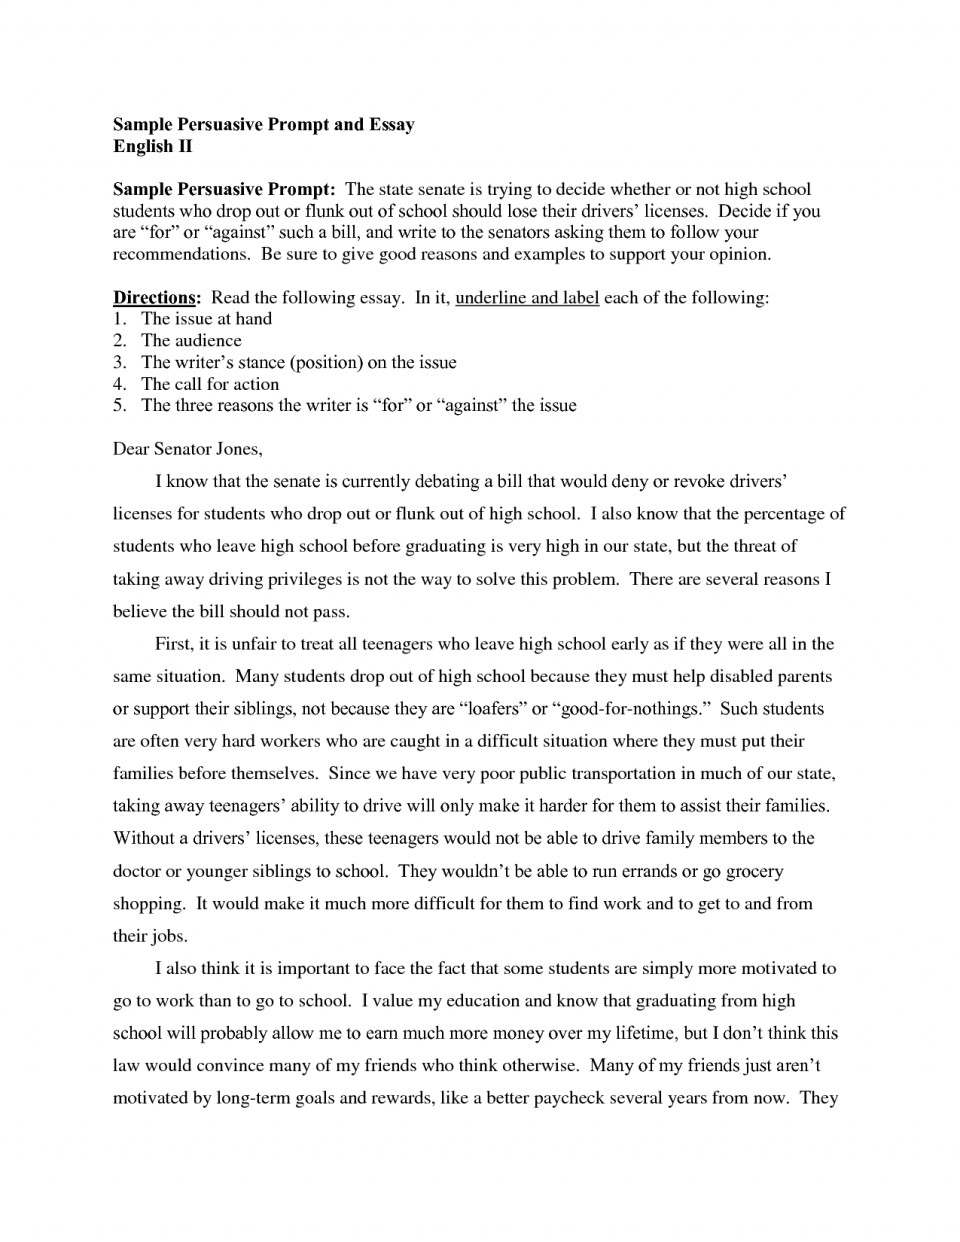 013 Research Paper Easy Topic Persuasive Essay Topics For High School Sample Ideas Highschool Students Good Prompt Funny Fun List Of Seniors Writing English Sensational Psychology World History 960